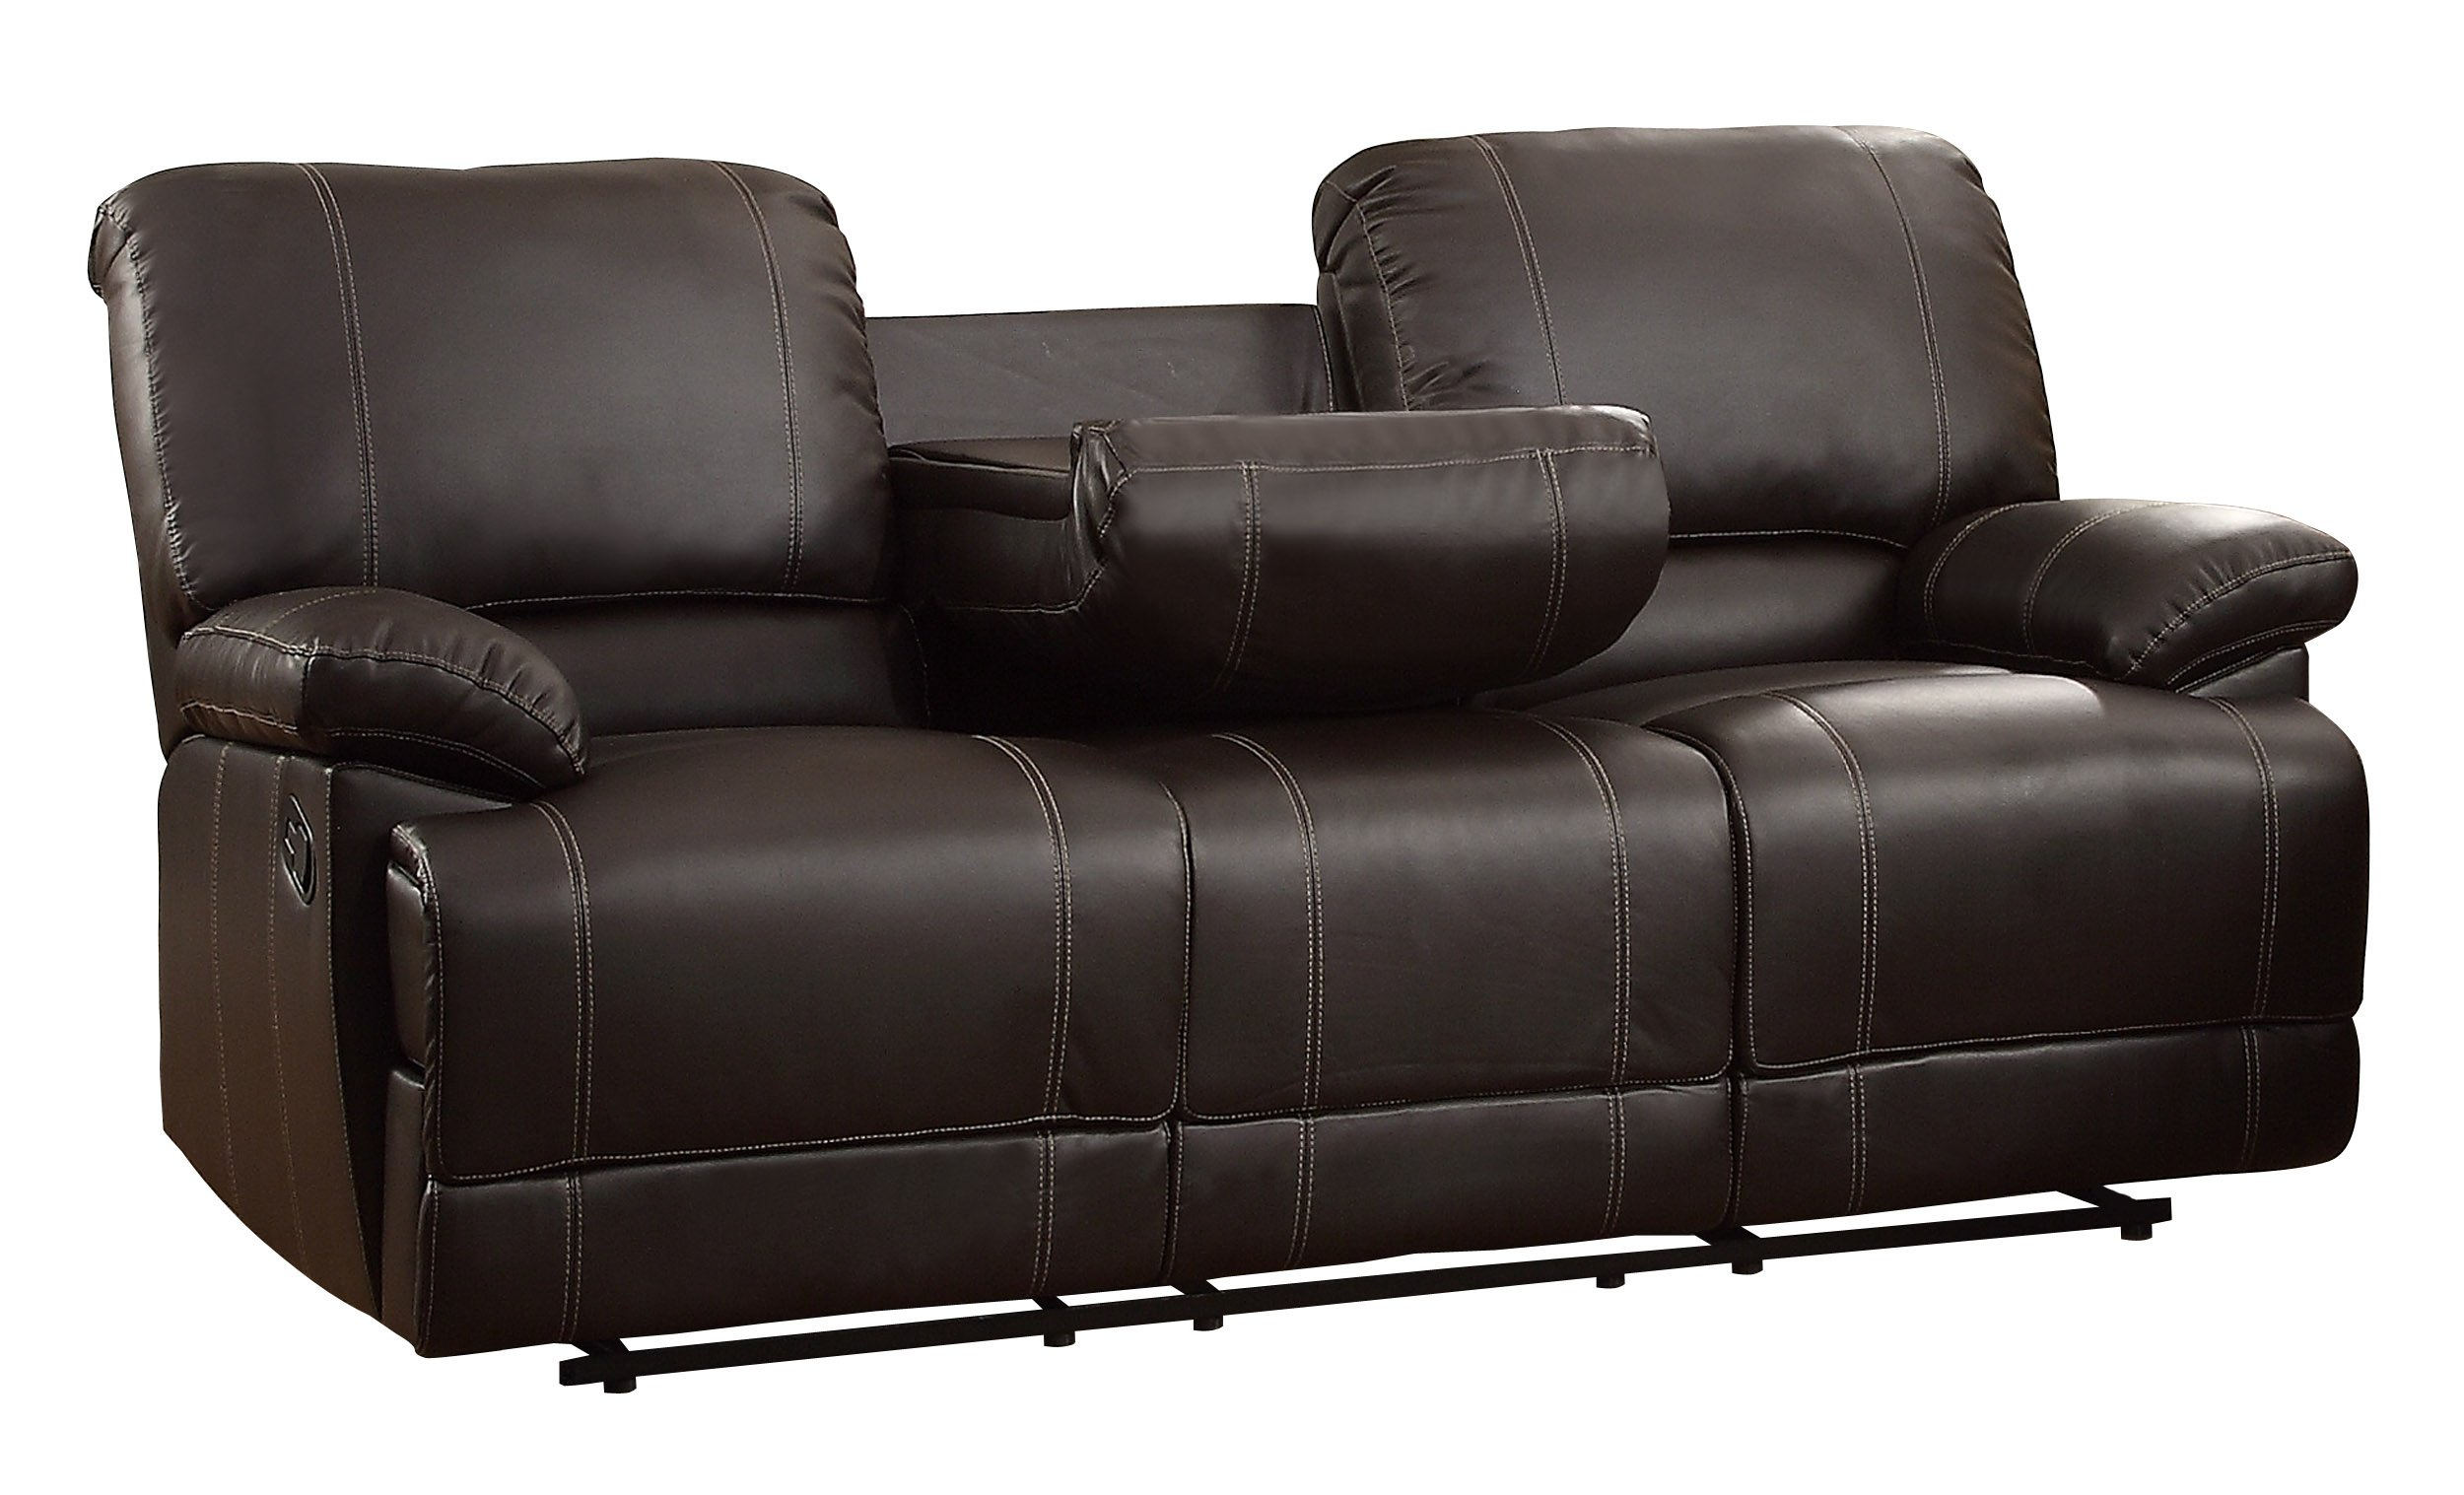 Homelegance Faux Leather Double Reclining Sofa, Brown by Homelegance